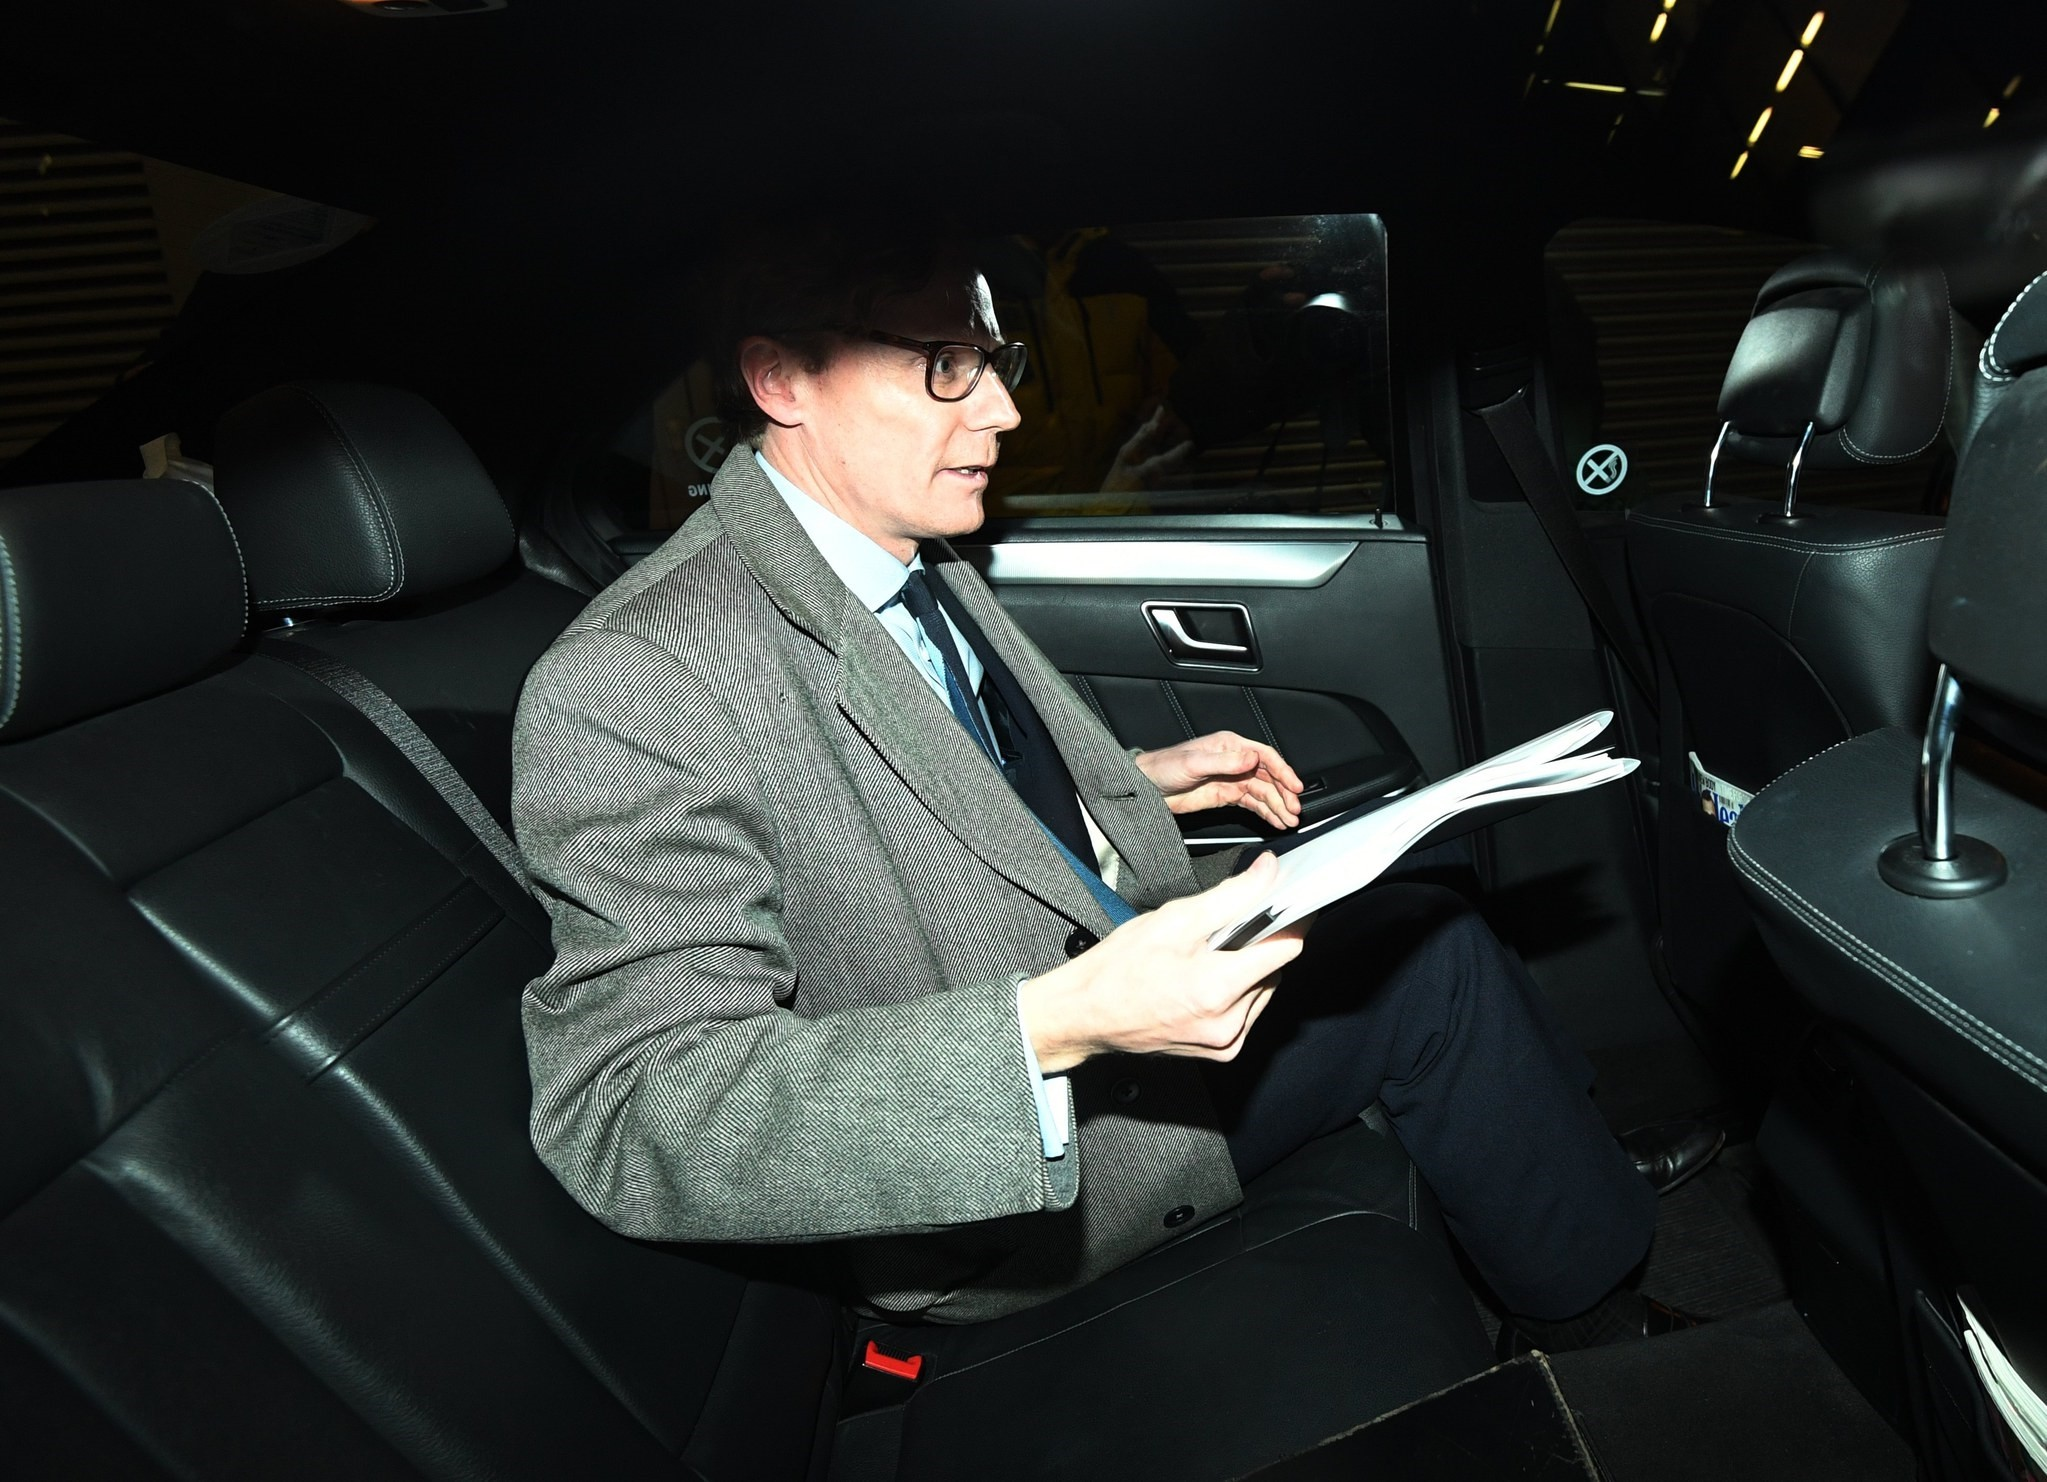 Alexander Nix, CEO of the London-based political consulting firm 'Cambridge Analytica' leaves his offices through the back door in London, March 20, 2018. (EPA Photo)